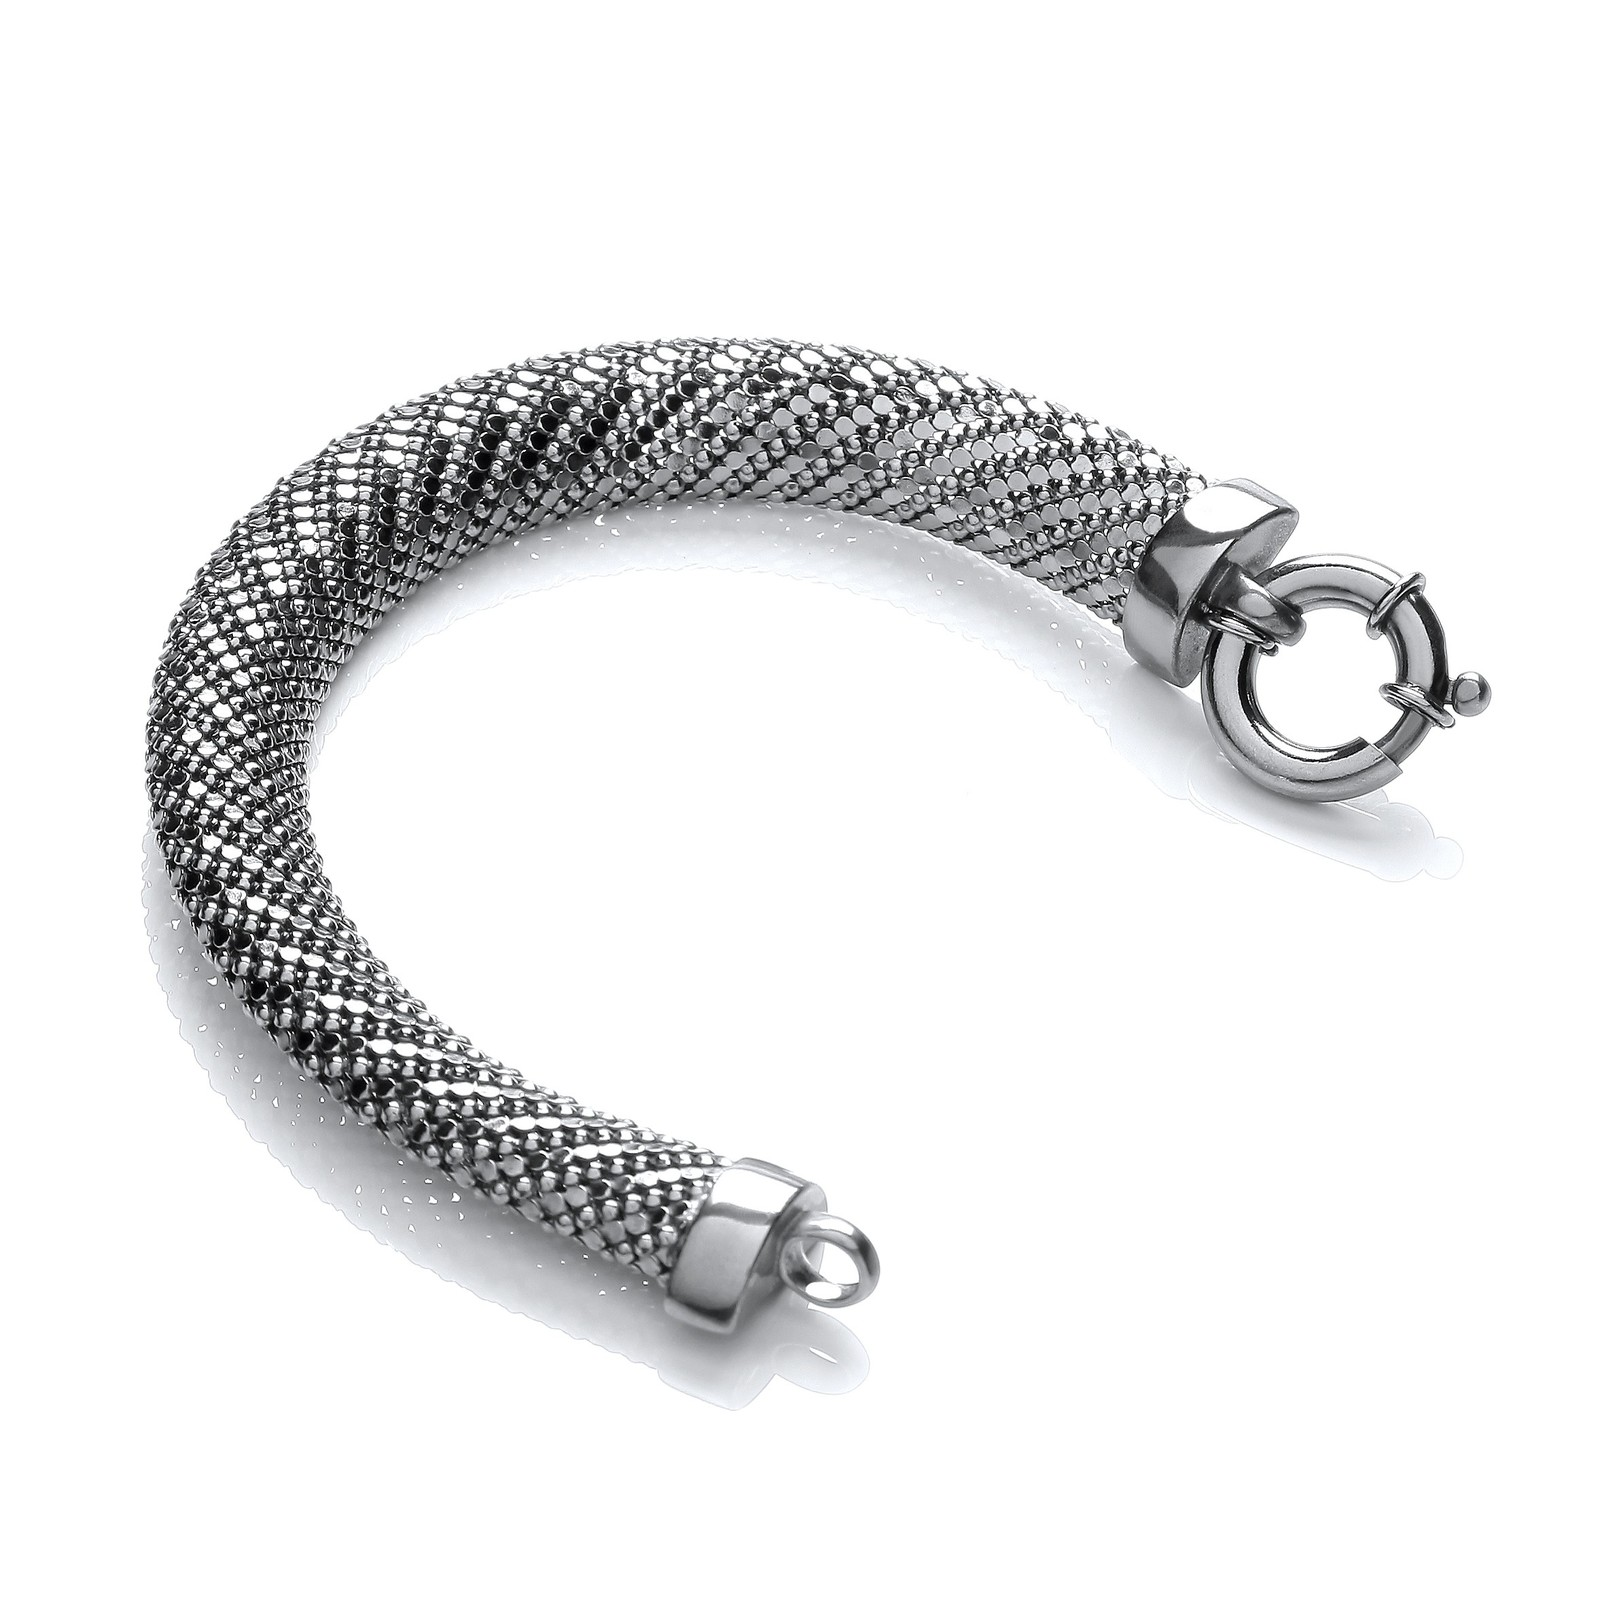 Ruthenium Plated Mesh Bracelet